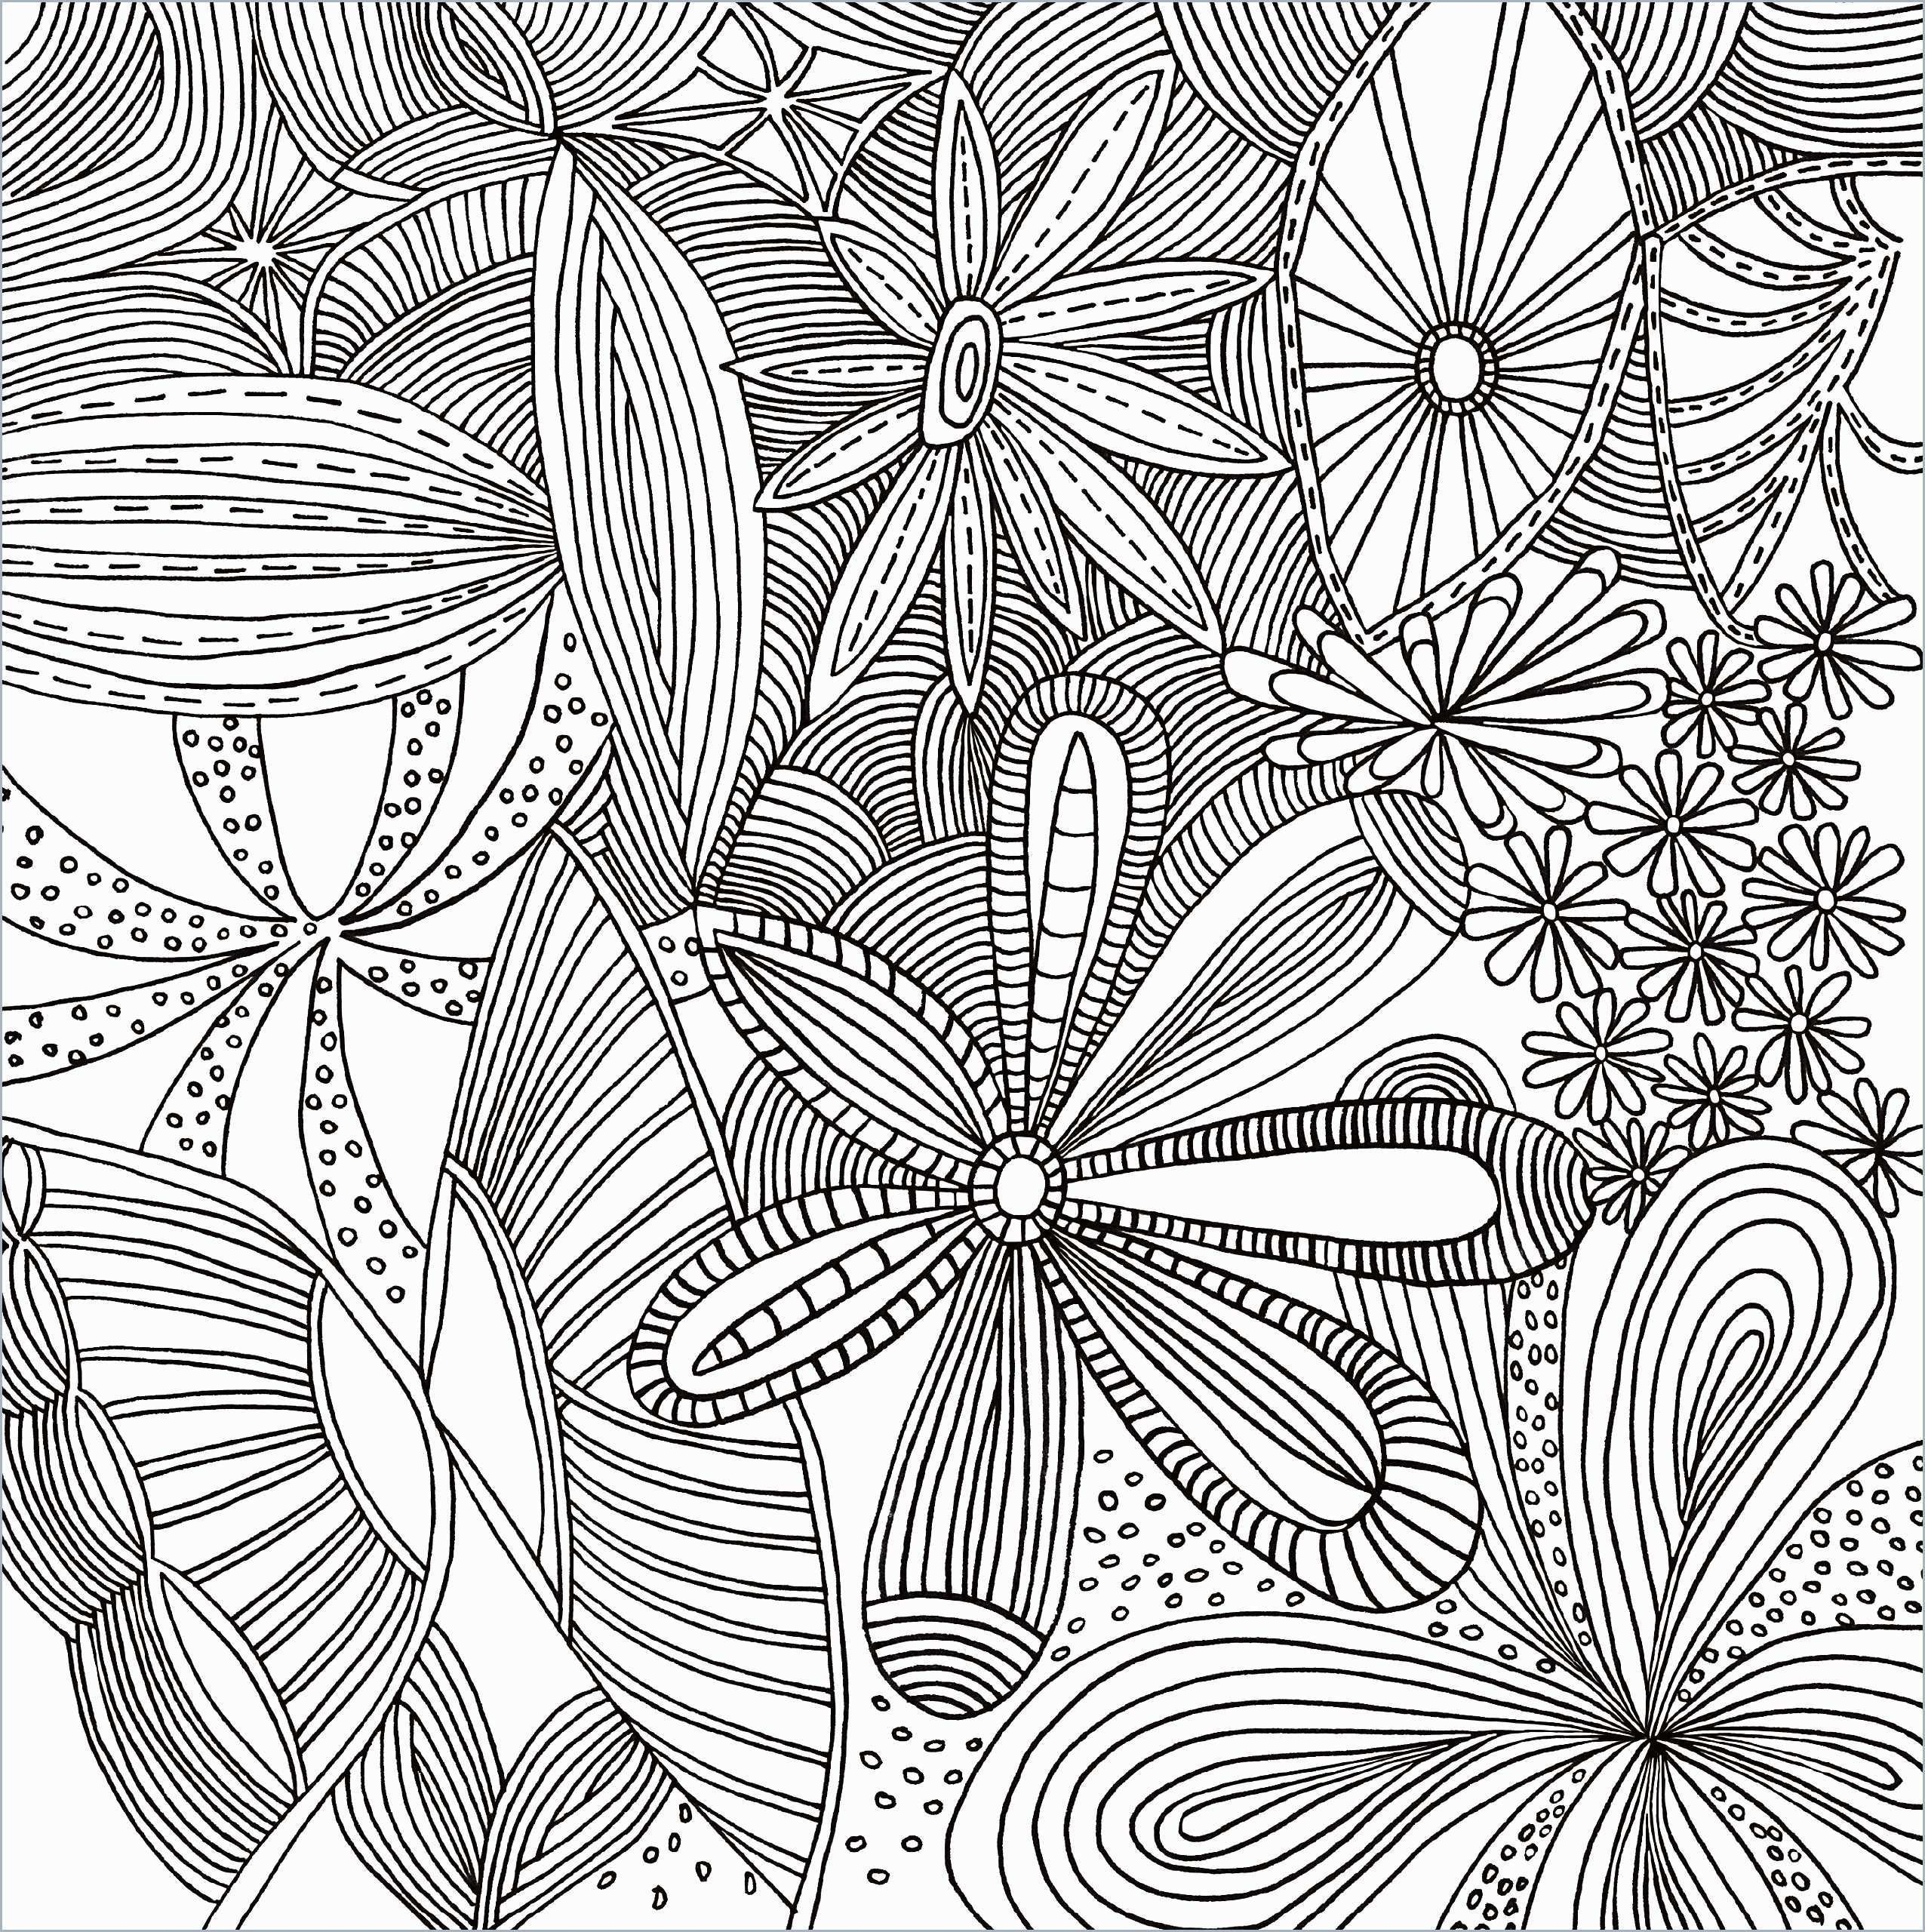 Water Cycle Coloring Page Make Photo Into Coloring Page Unique Turn Picture Into Coloring Page